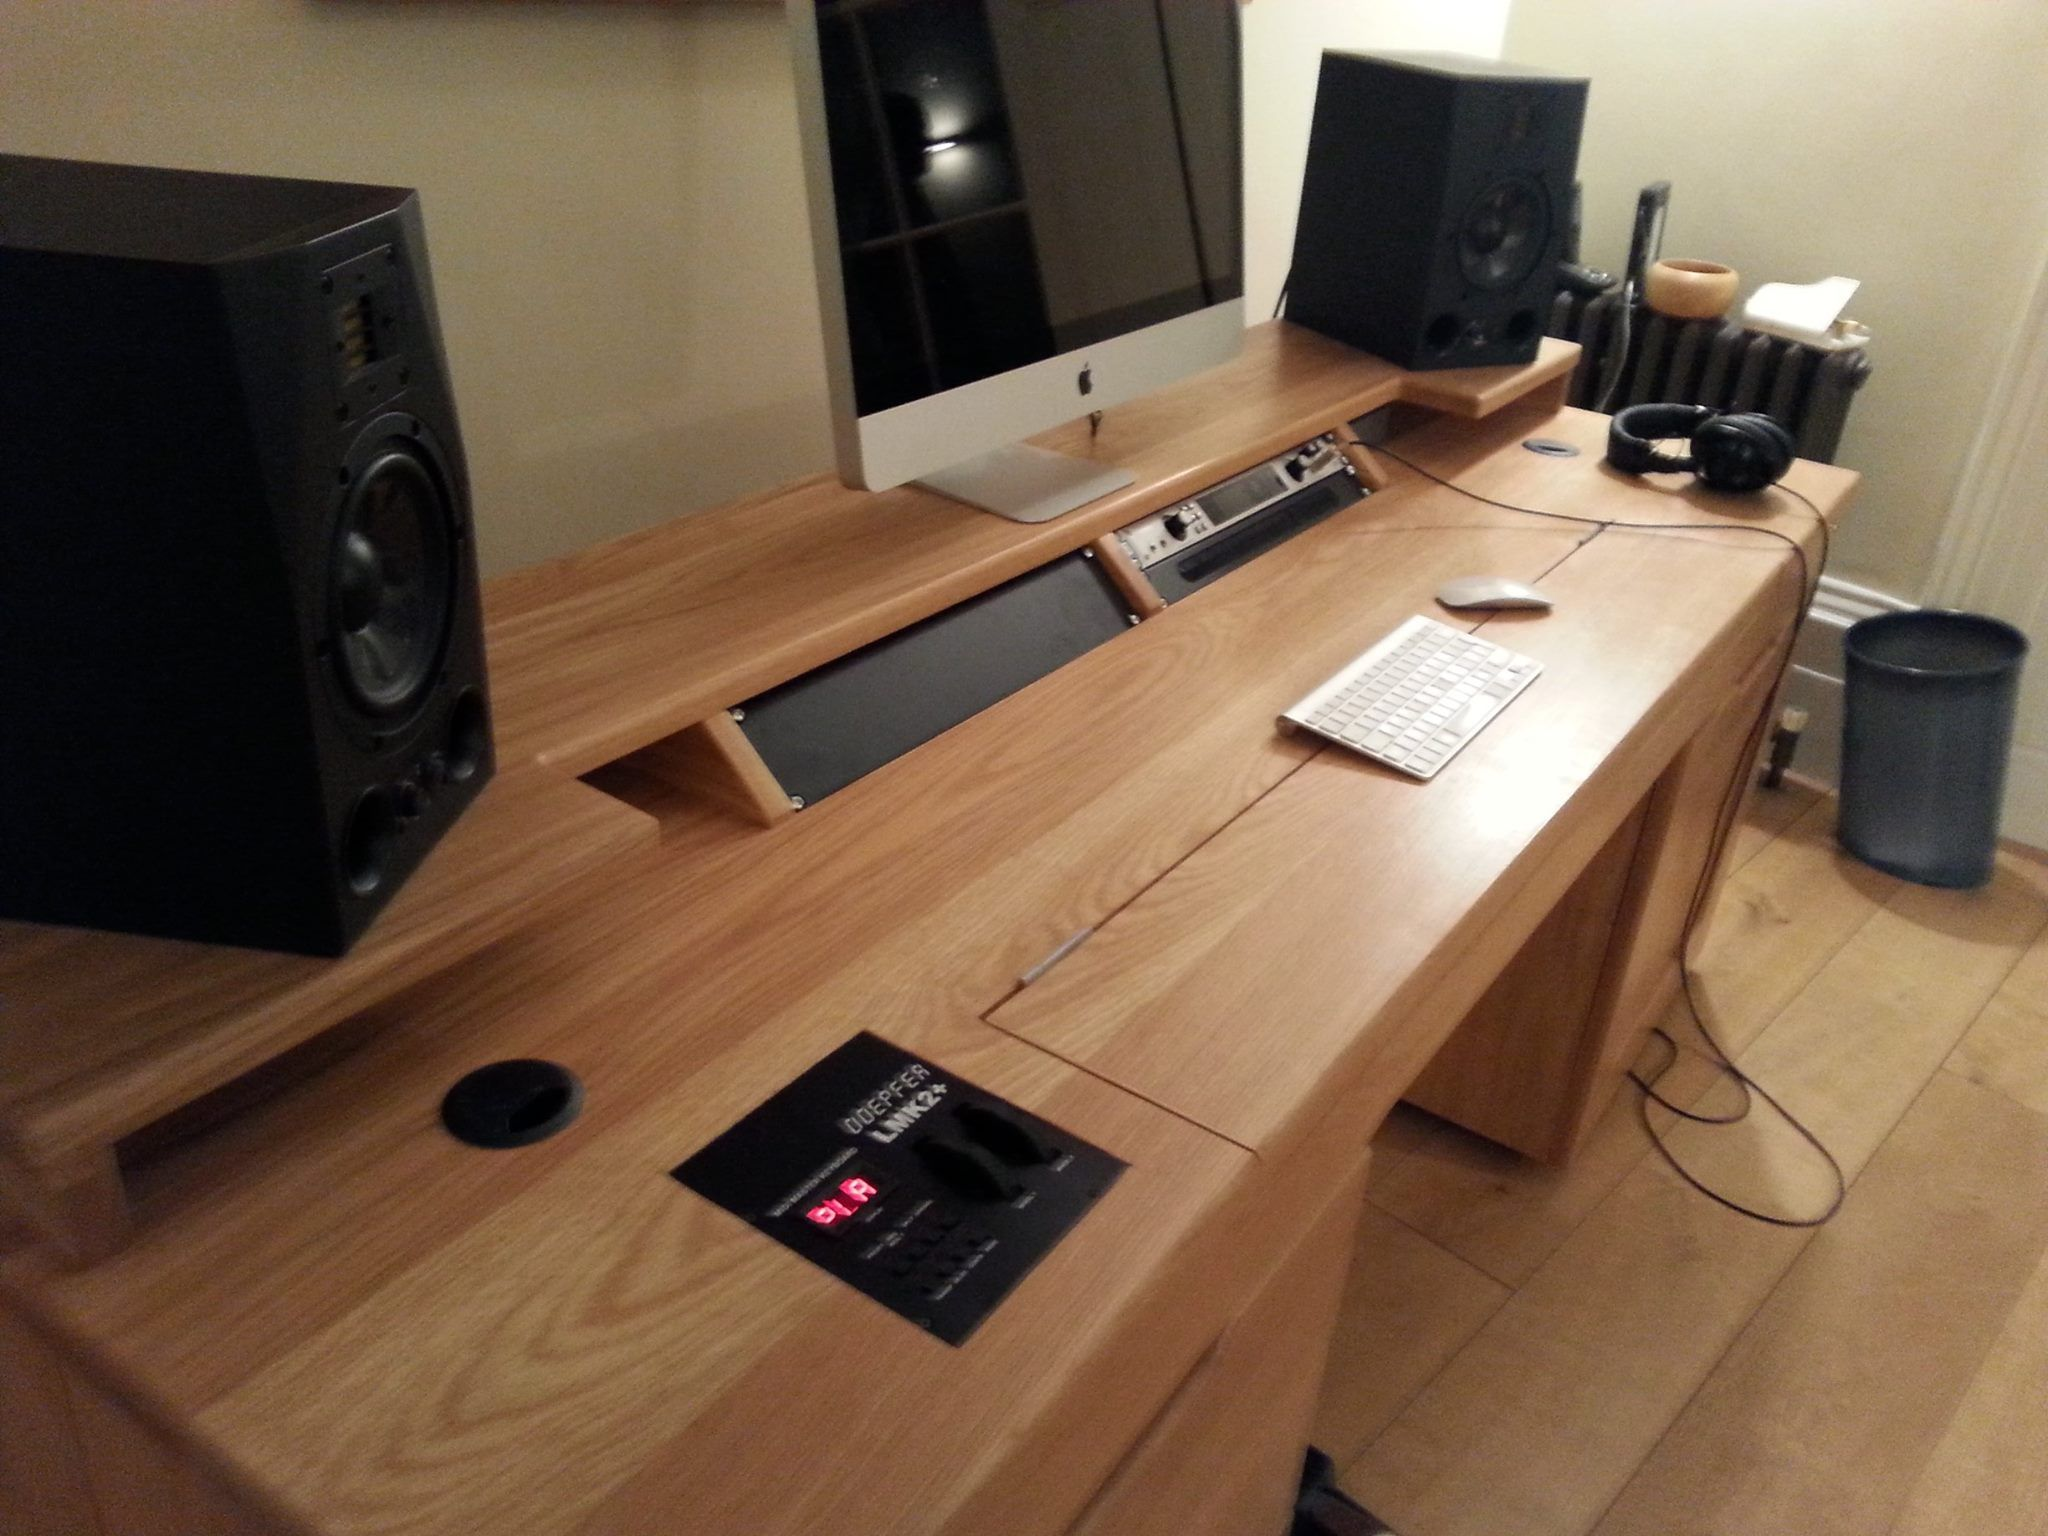 custom built recording studio desk built to house doepfer